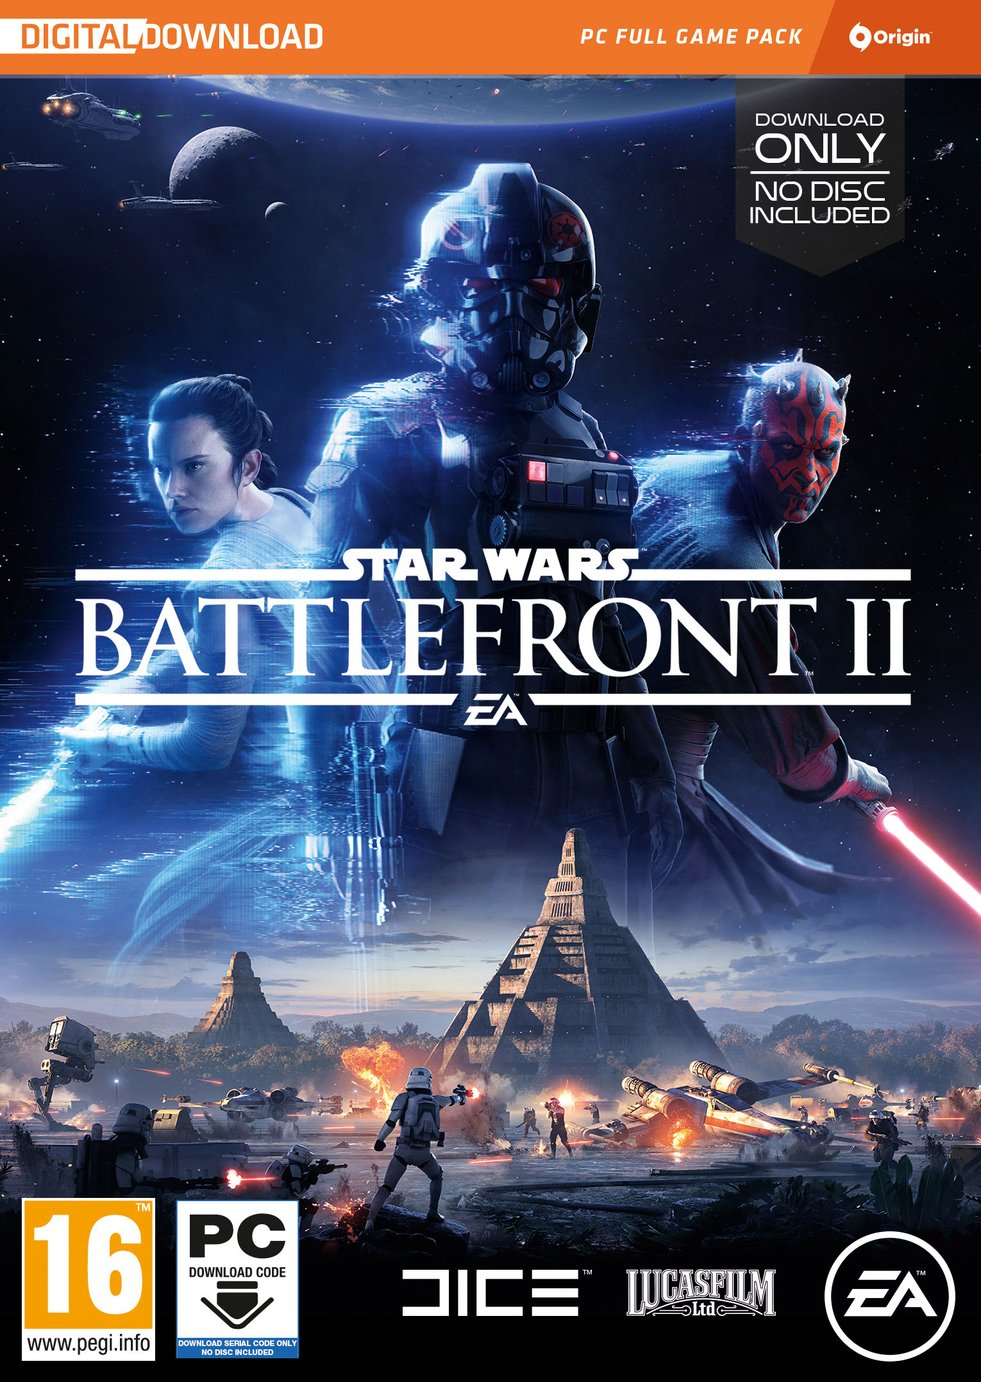 Image of Star Wars Battlefront II PC Game